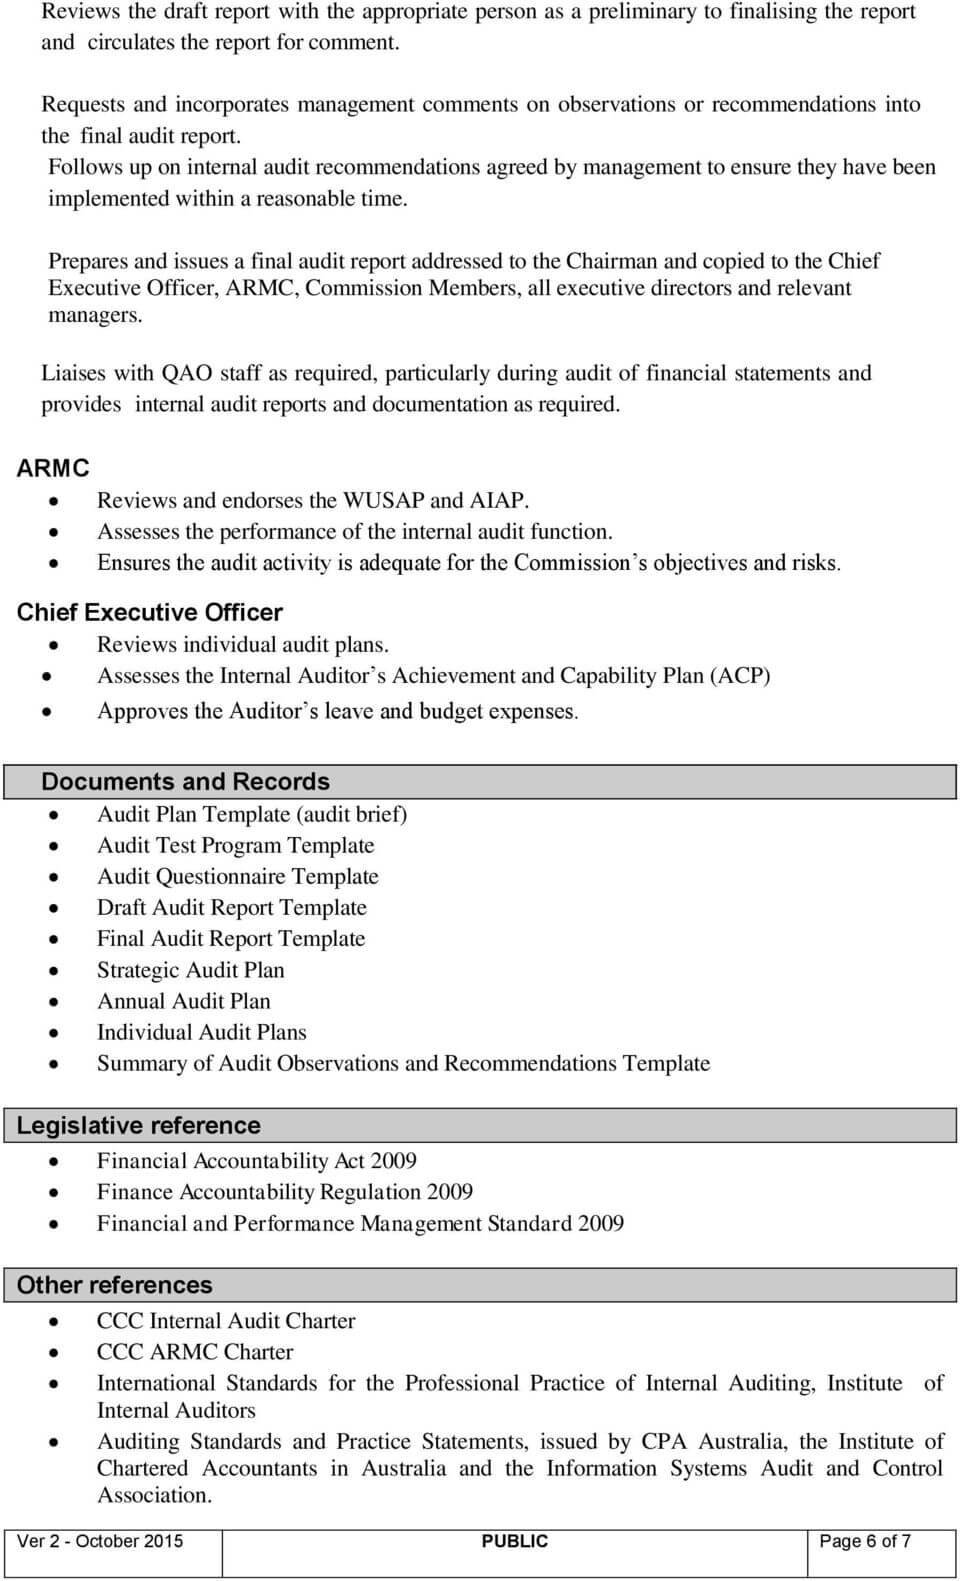 Internal Audit (Policy & Procedure) - Pdf Free Download Regarding Information System Audit Report Template